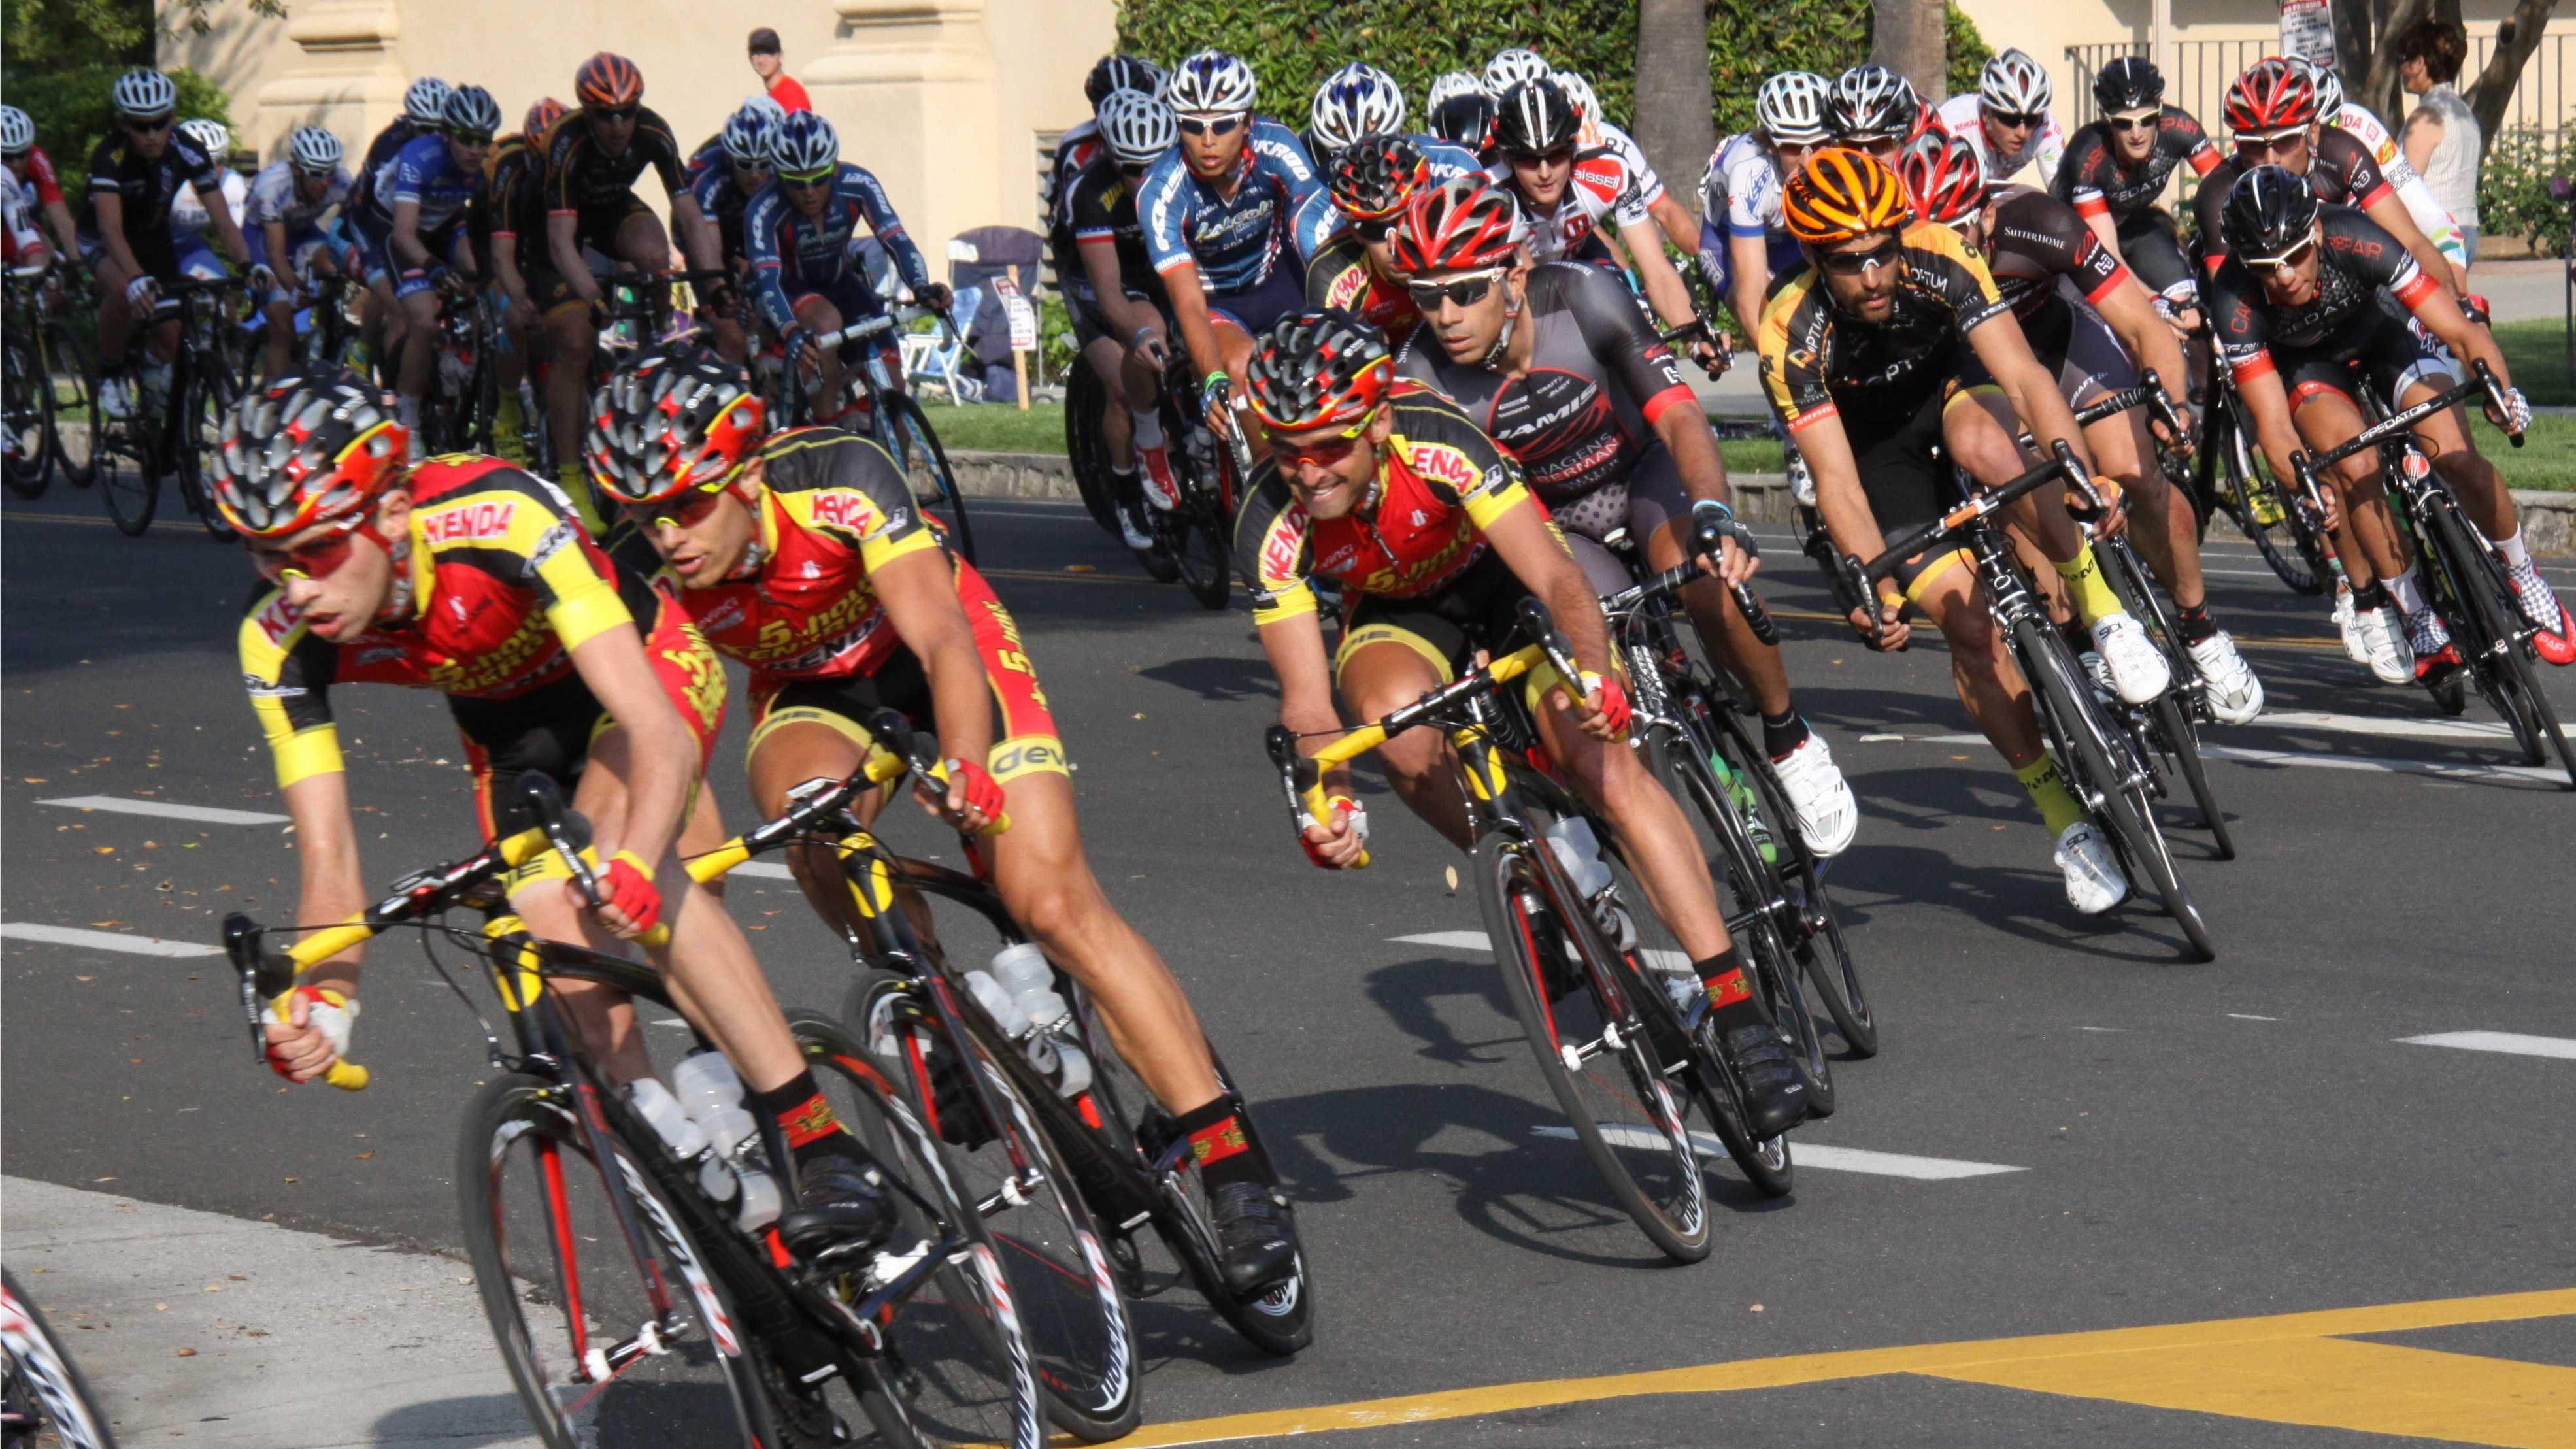 Max Jenkins, with the Kenda Pro Cycling 5-Hour Energy Team